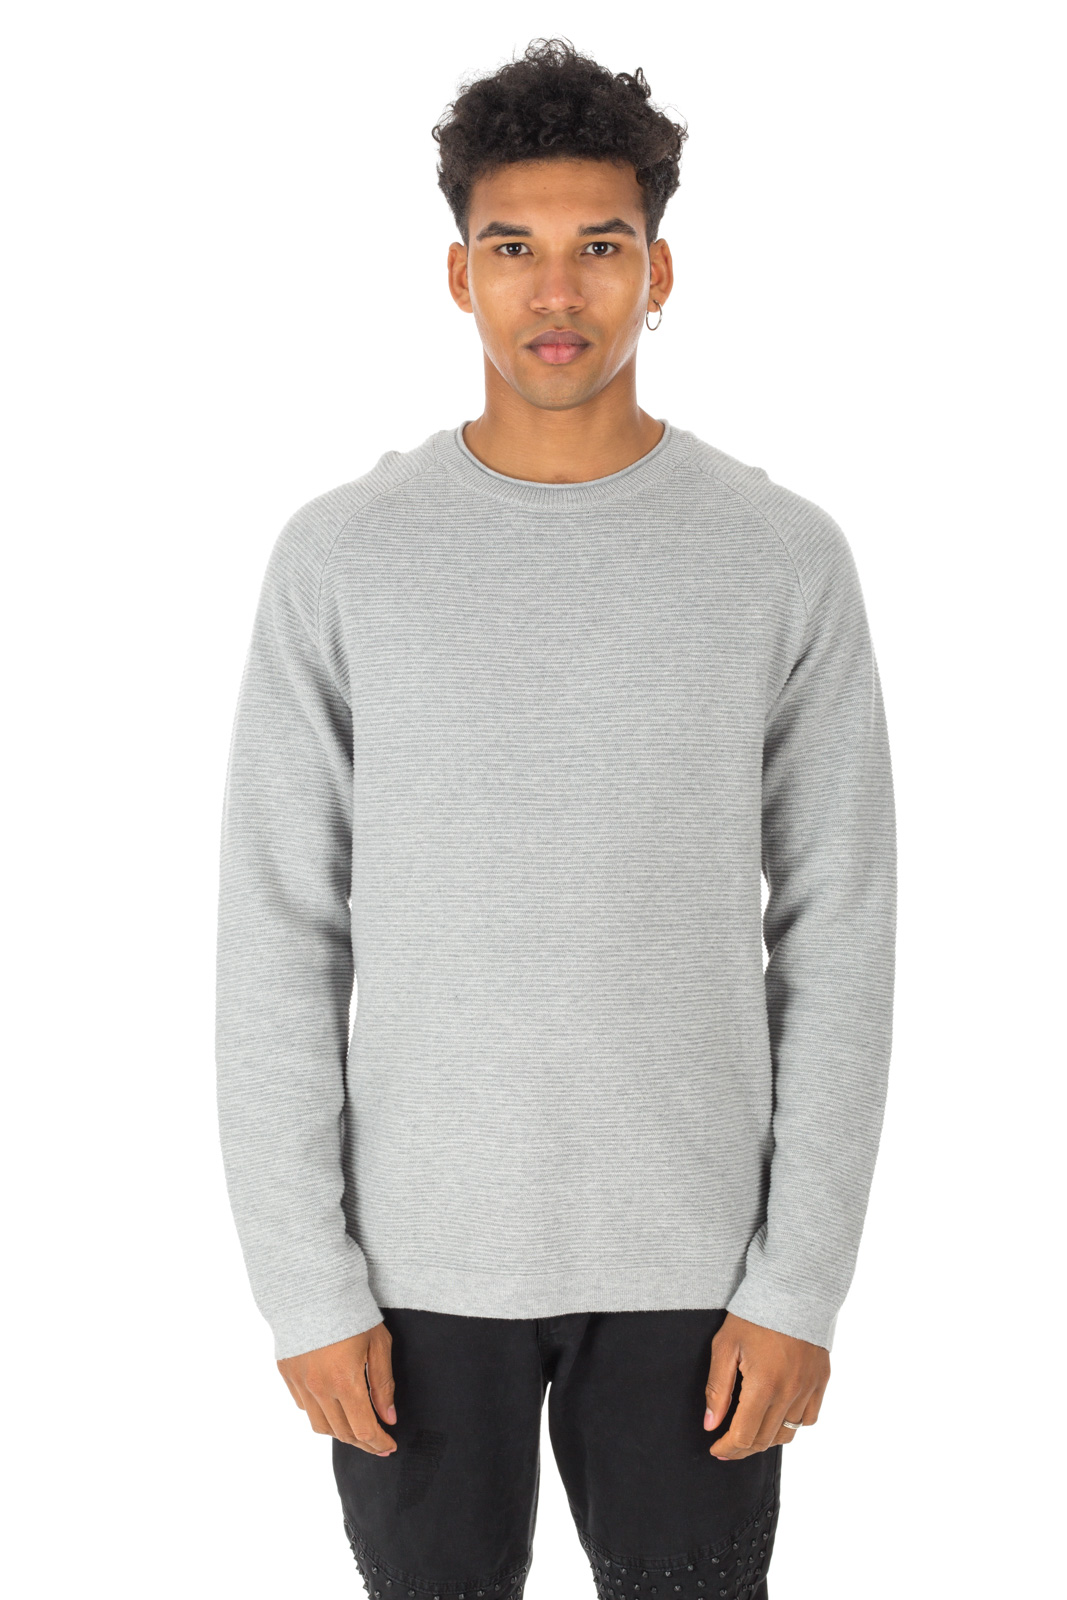 Minimum - Hanson Gray Light Green Sweater